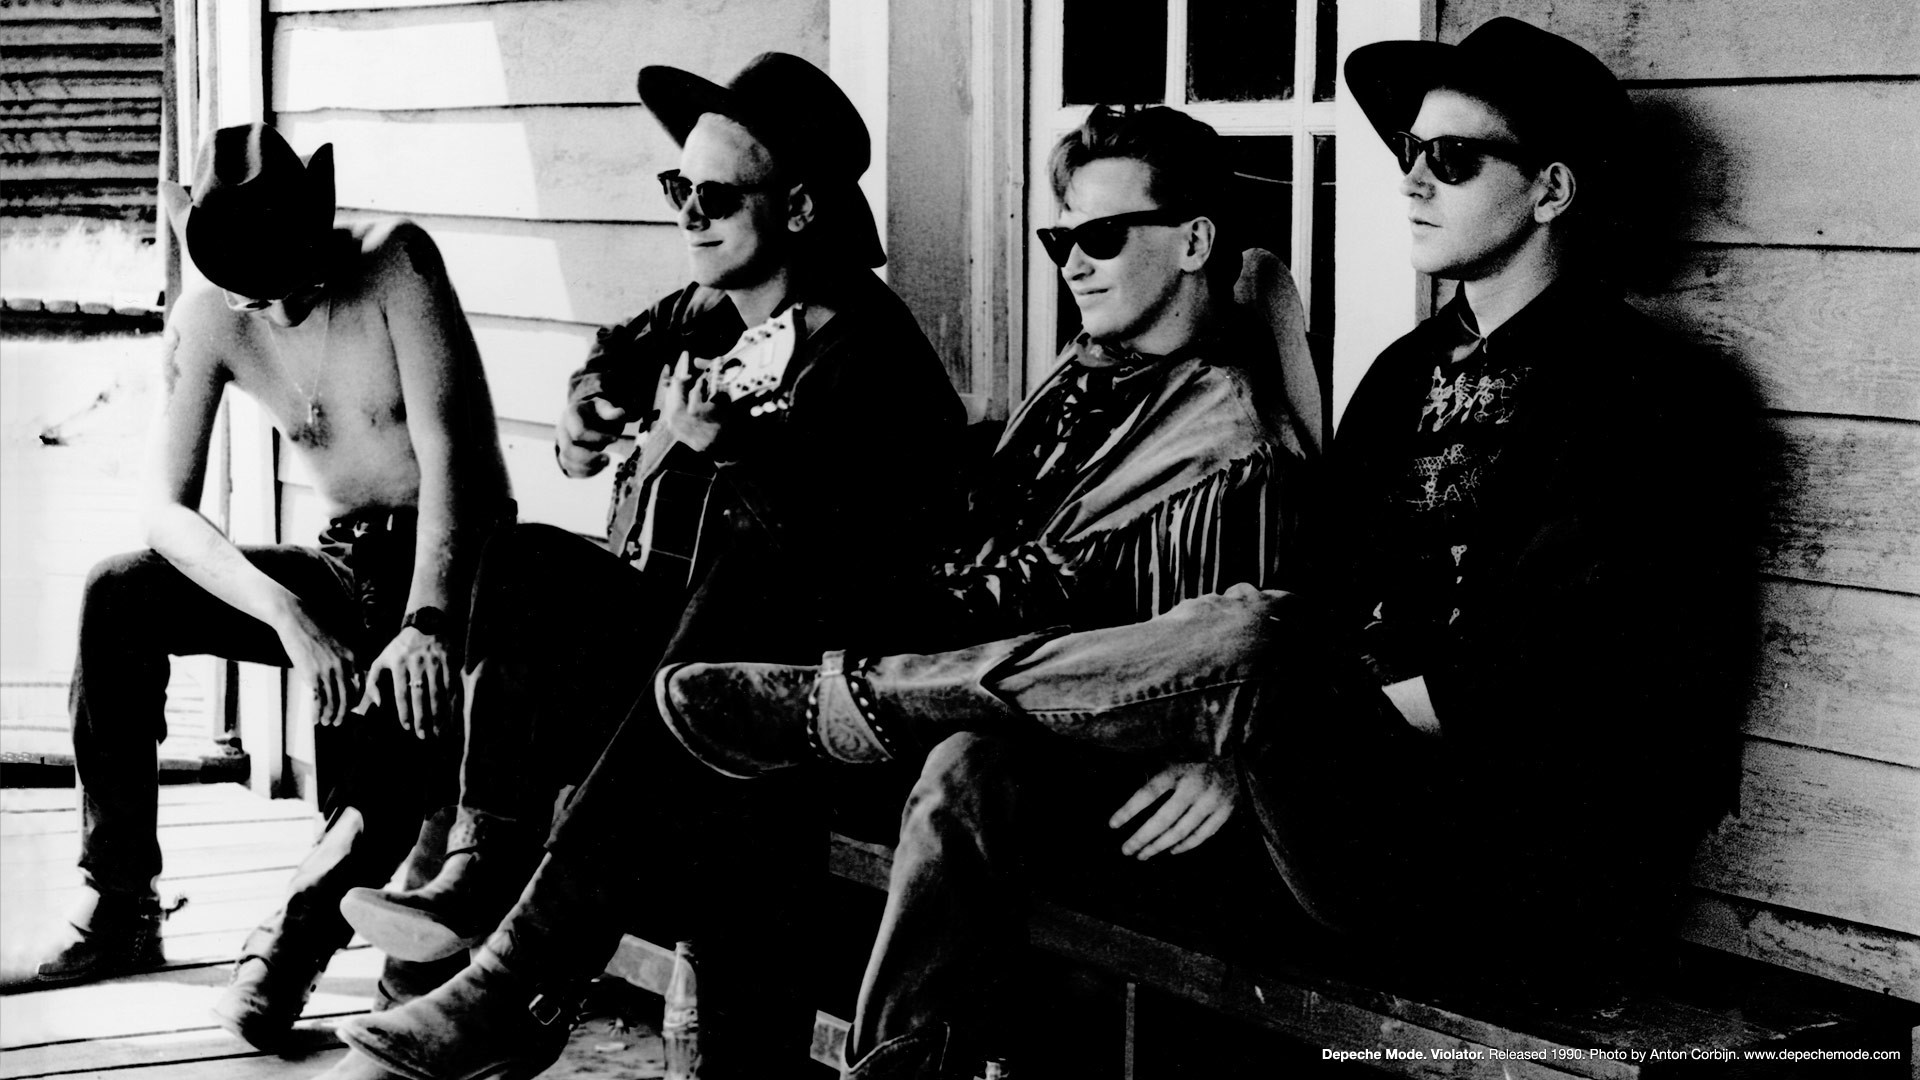 1920x1080 Depeche Mode my first love | Cool People | Pinterest | Depeche mode, Martin  gore and Movie